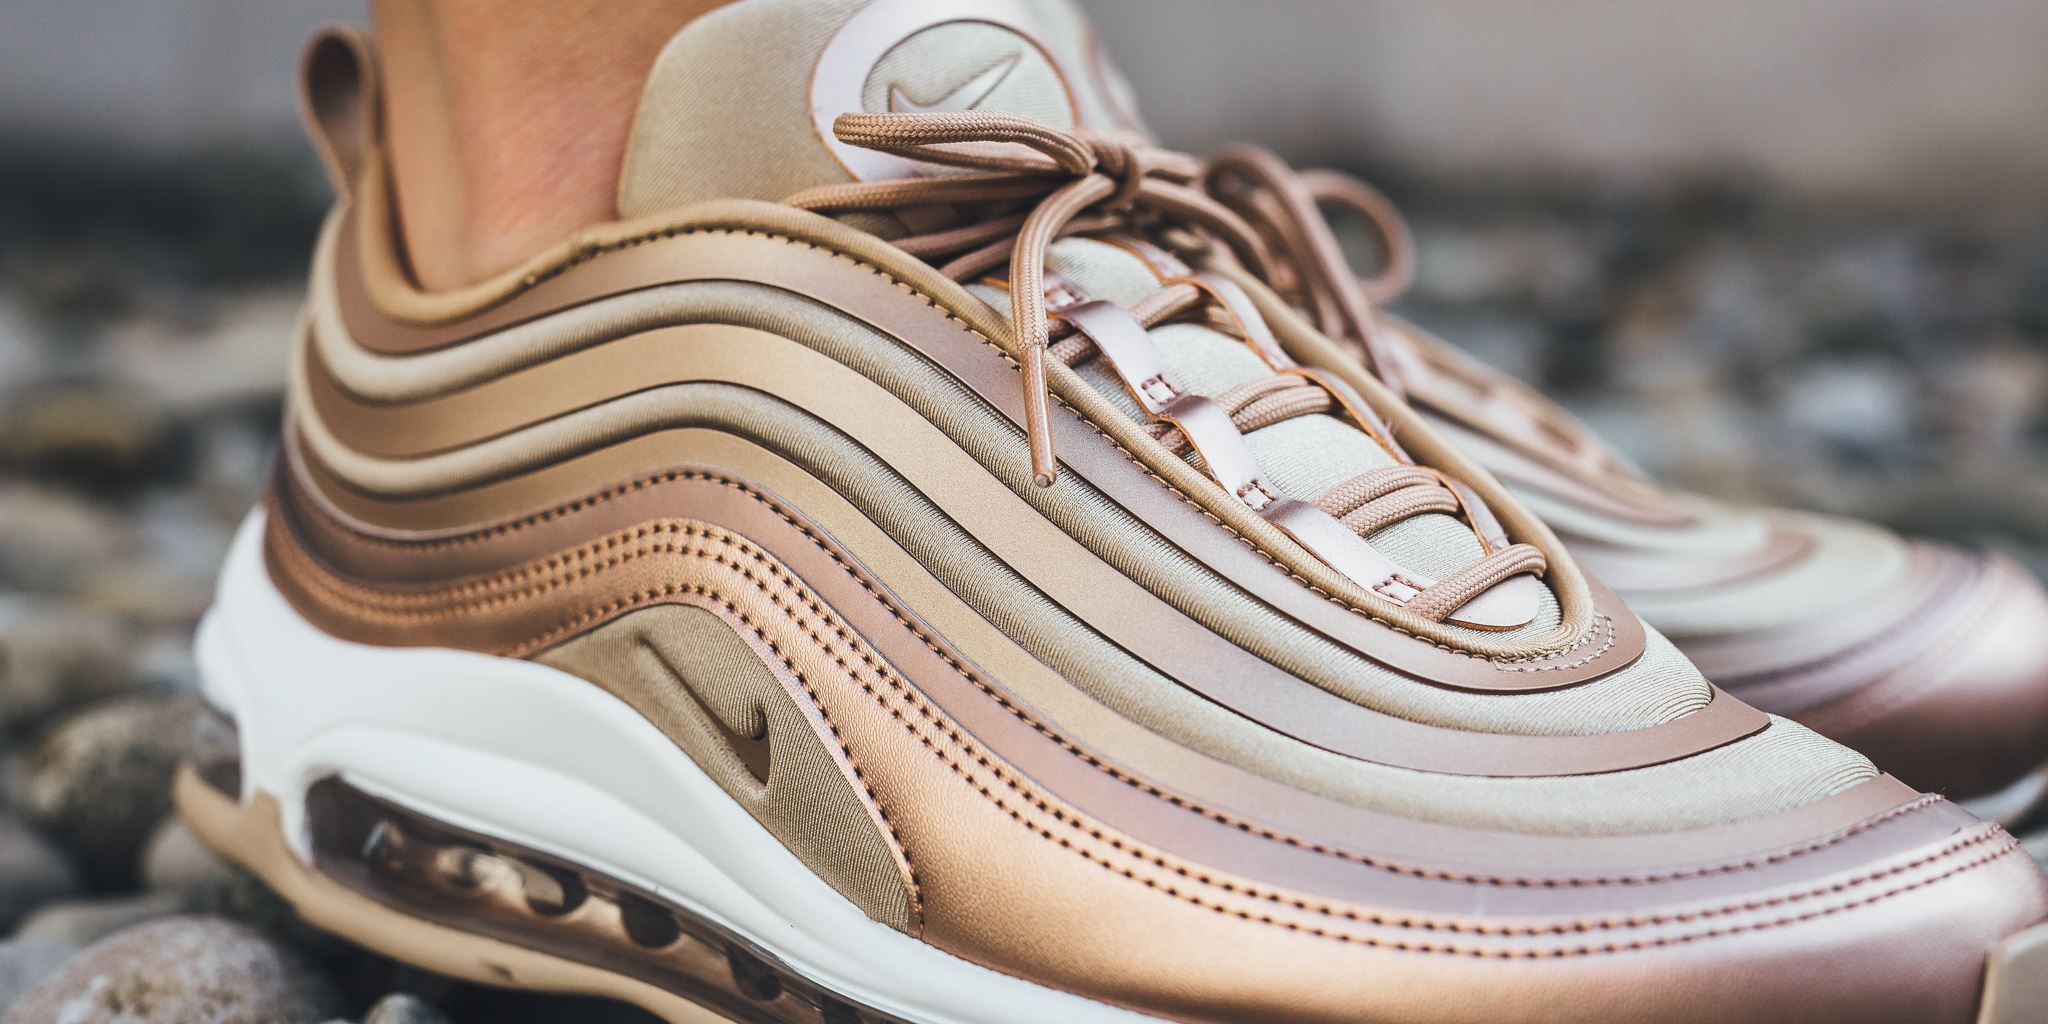 chaussures nike wmns air max 97 ultra 17 rose gold